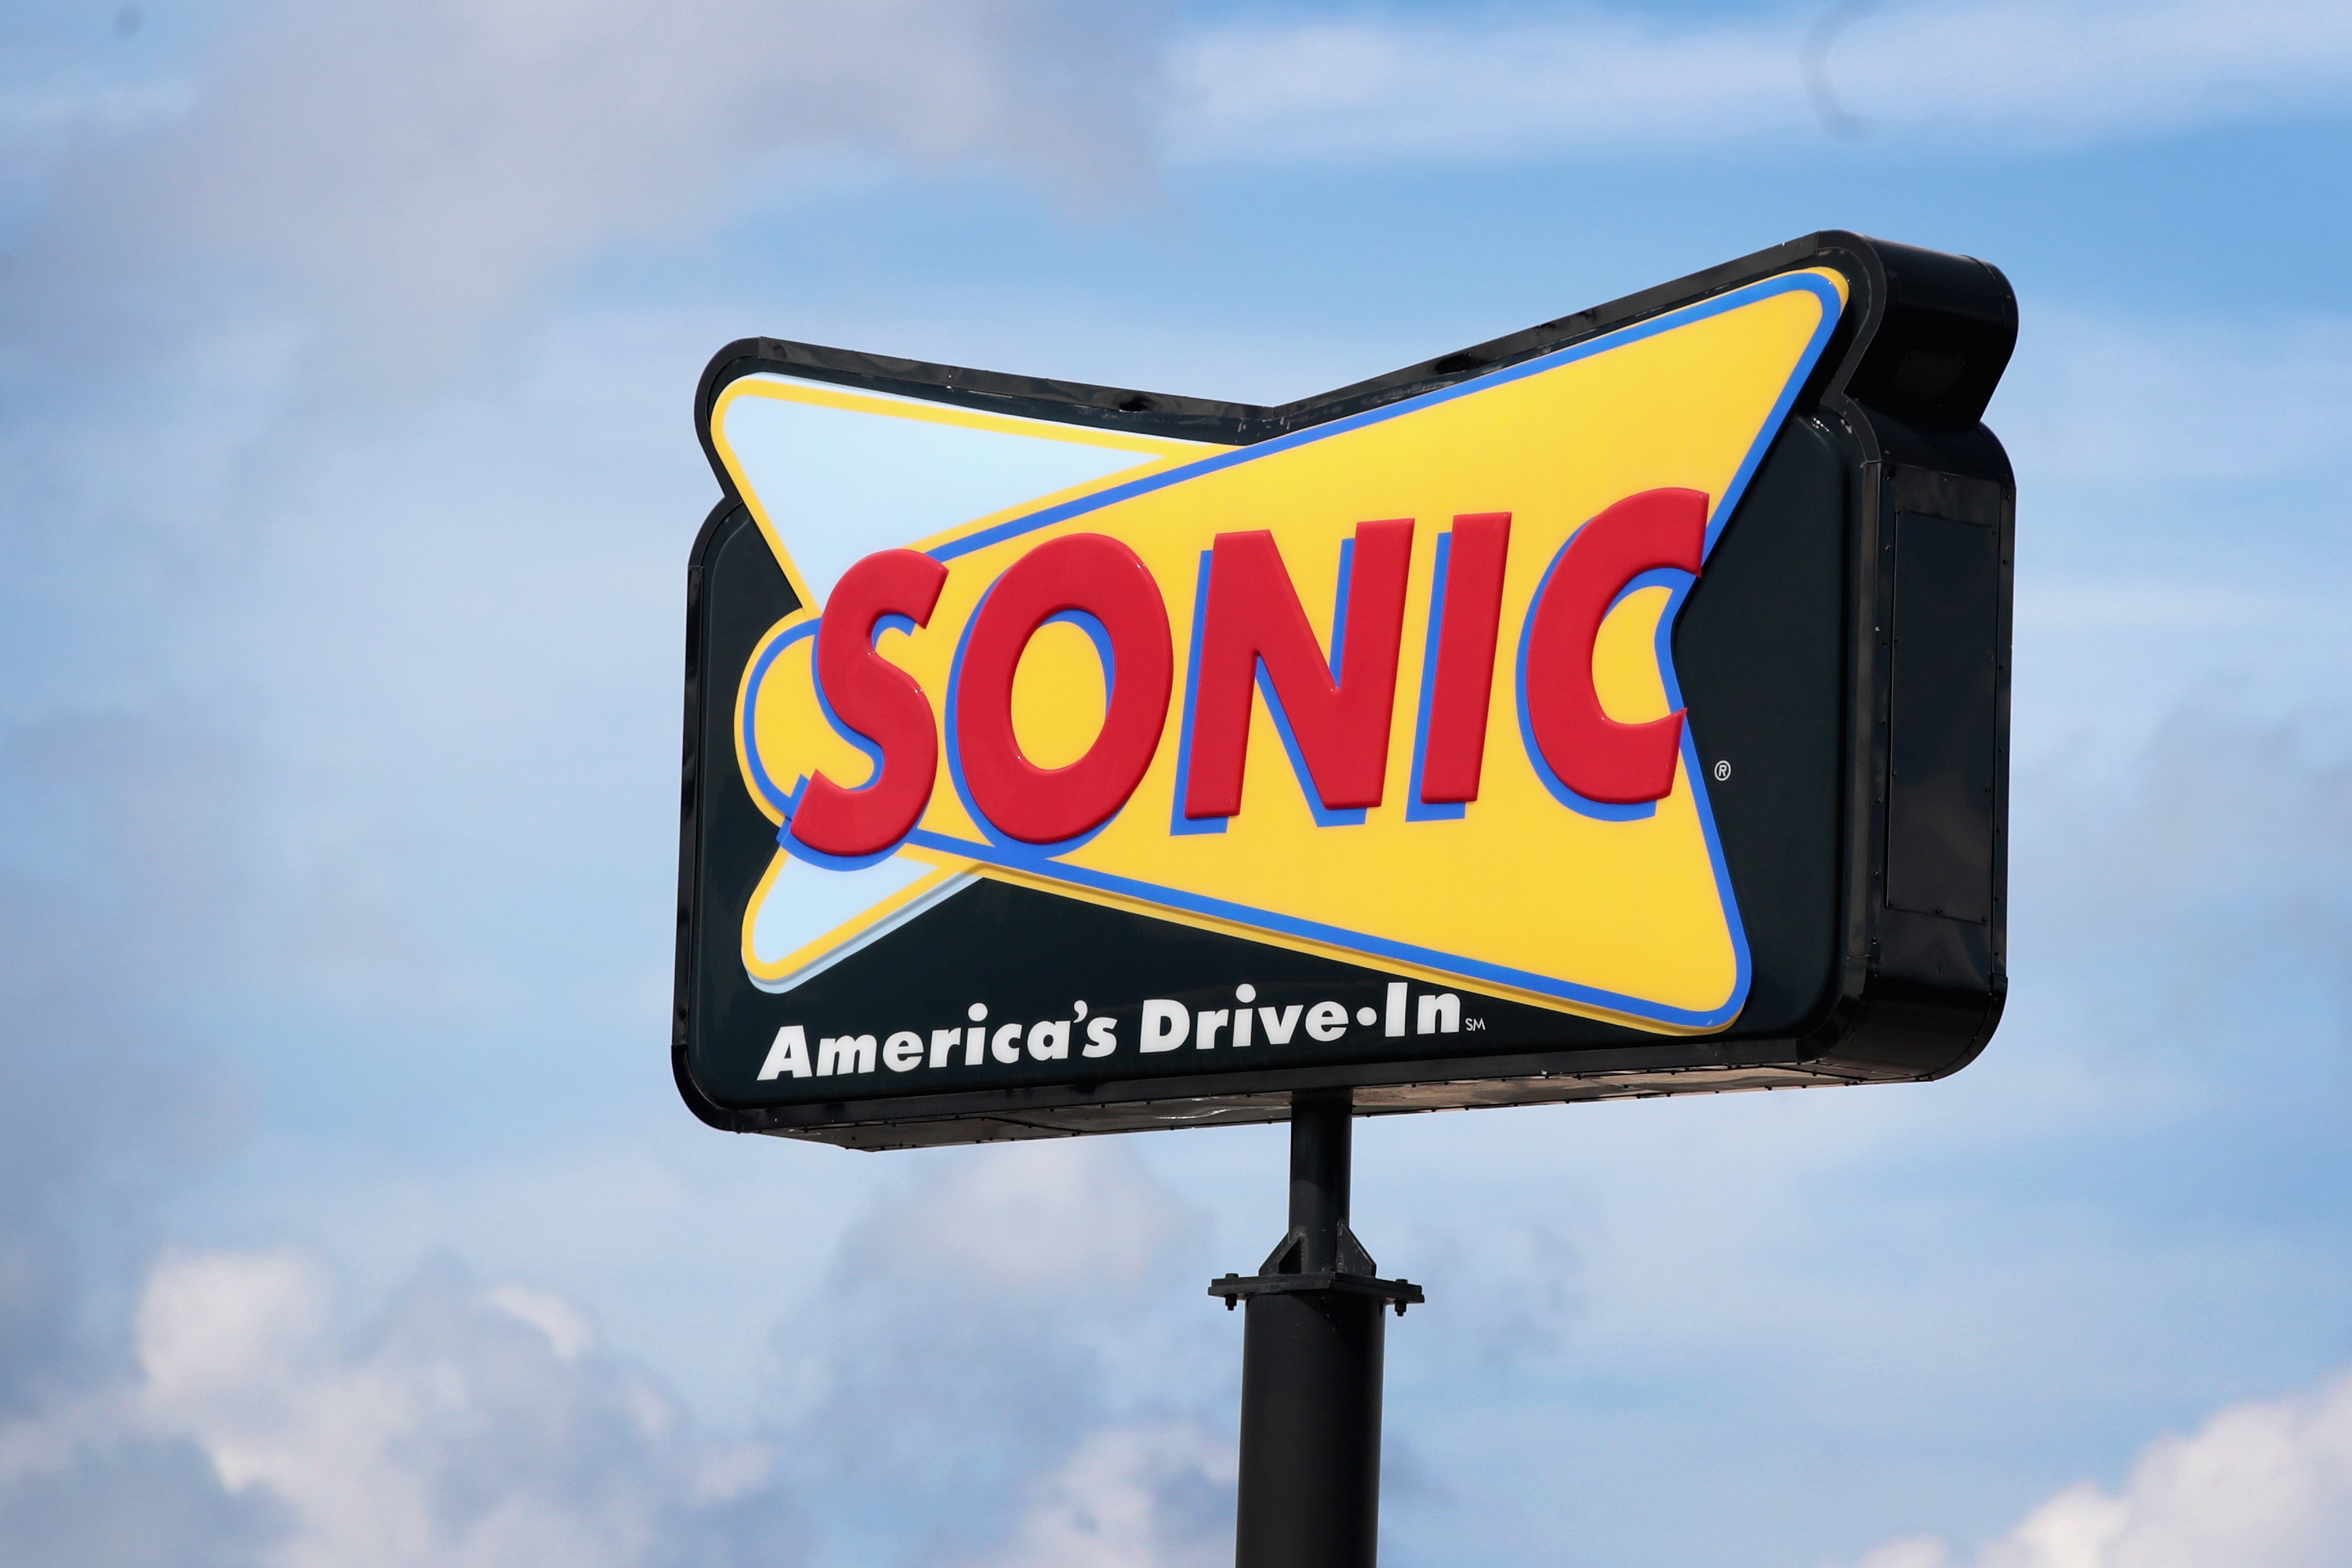 A large Sonic sign against a blue sky background